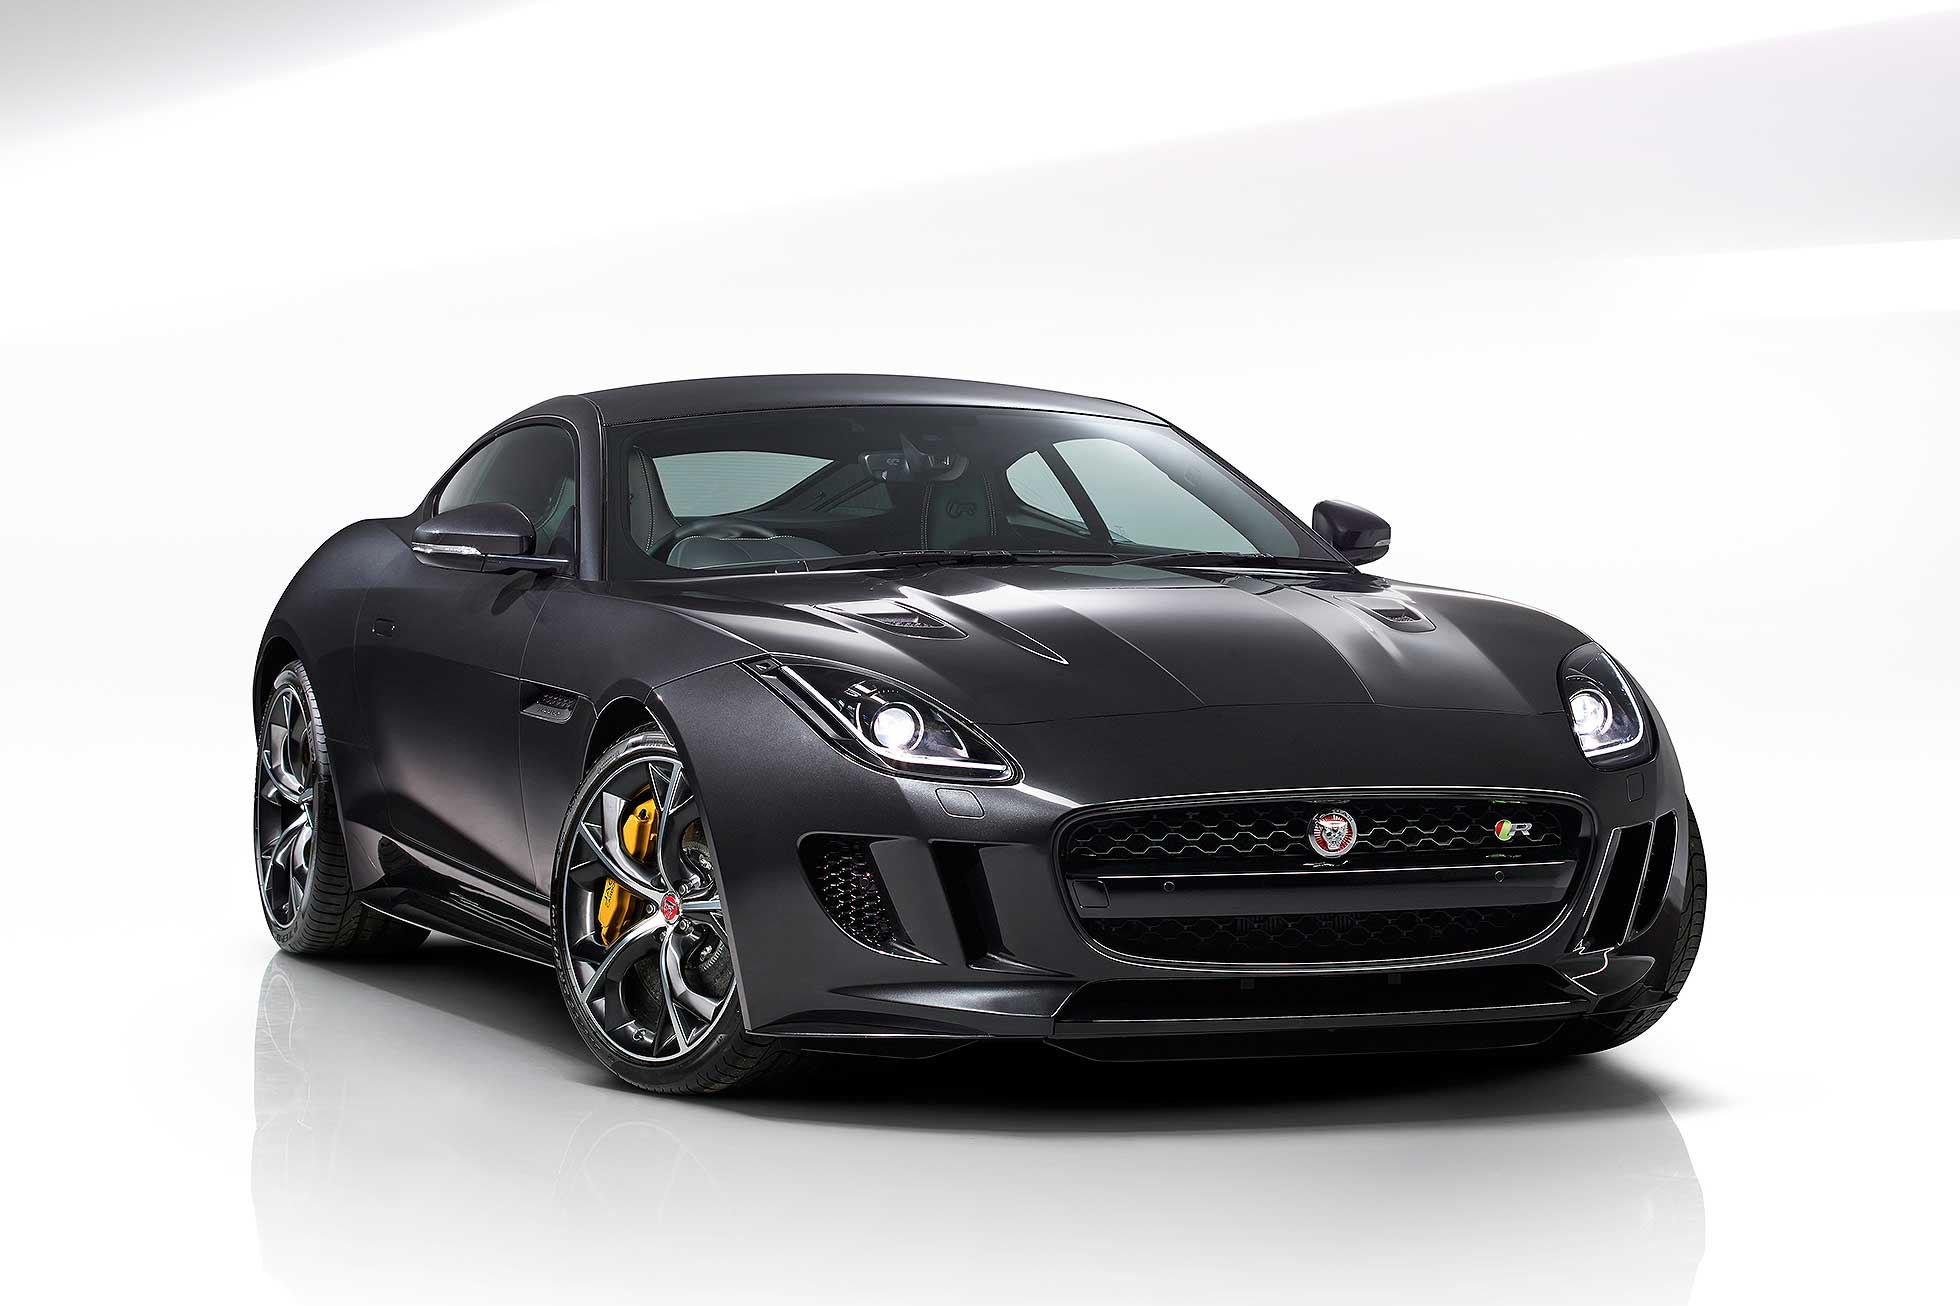 jaguar f type range doubles up for 2015 with new tech motoring research. Black Bedroom Furniture Sets. Home Design Ideas